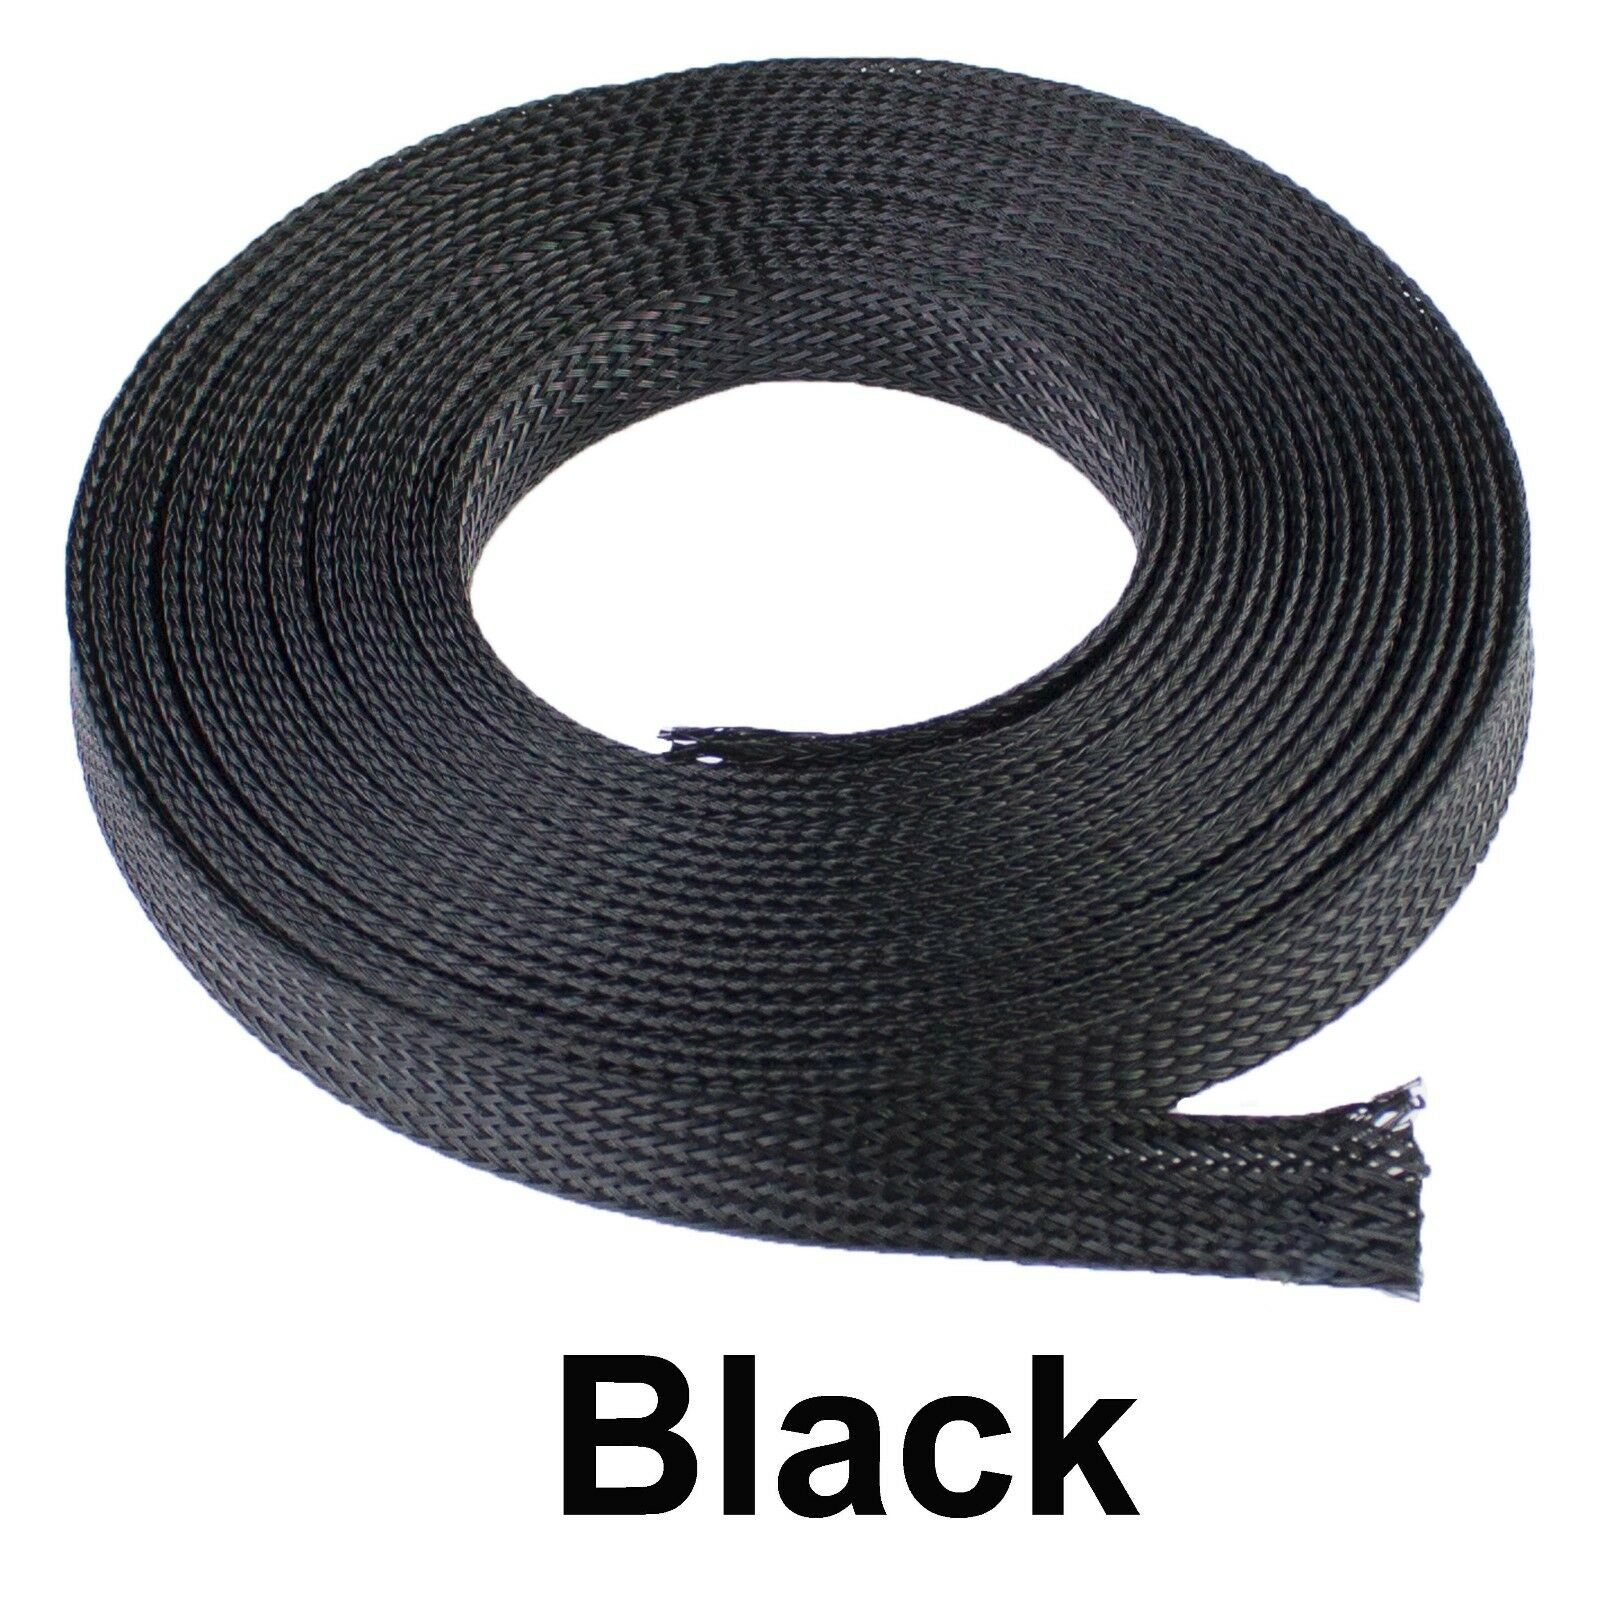 ALL SIZES & COLORS 5' FT - 100 Feet Expandable Cable Sleeving Braided Tubing LOT Black